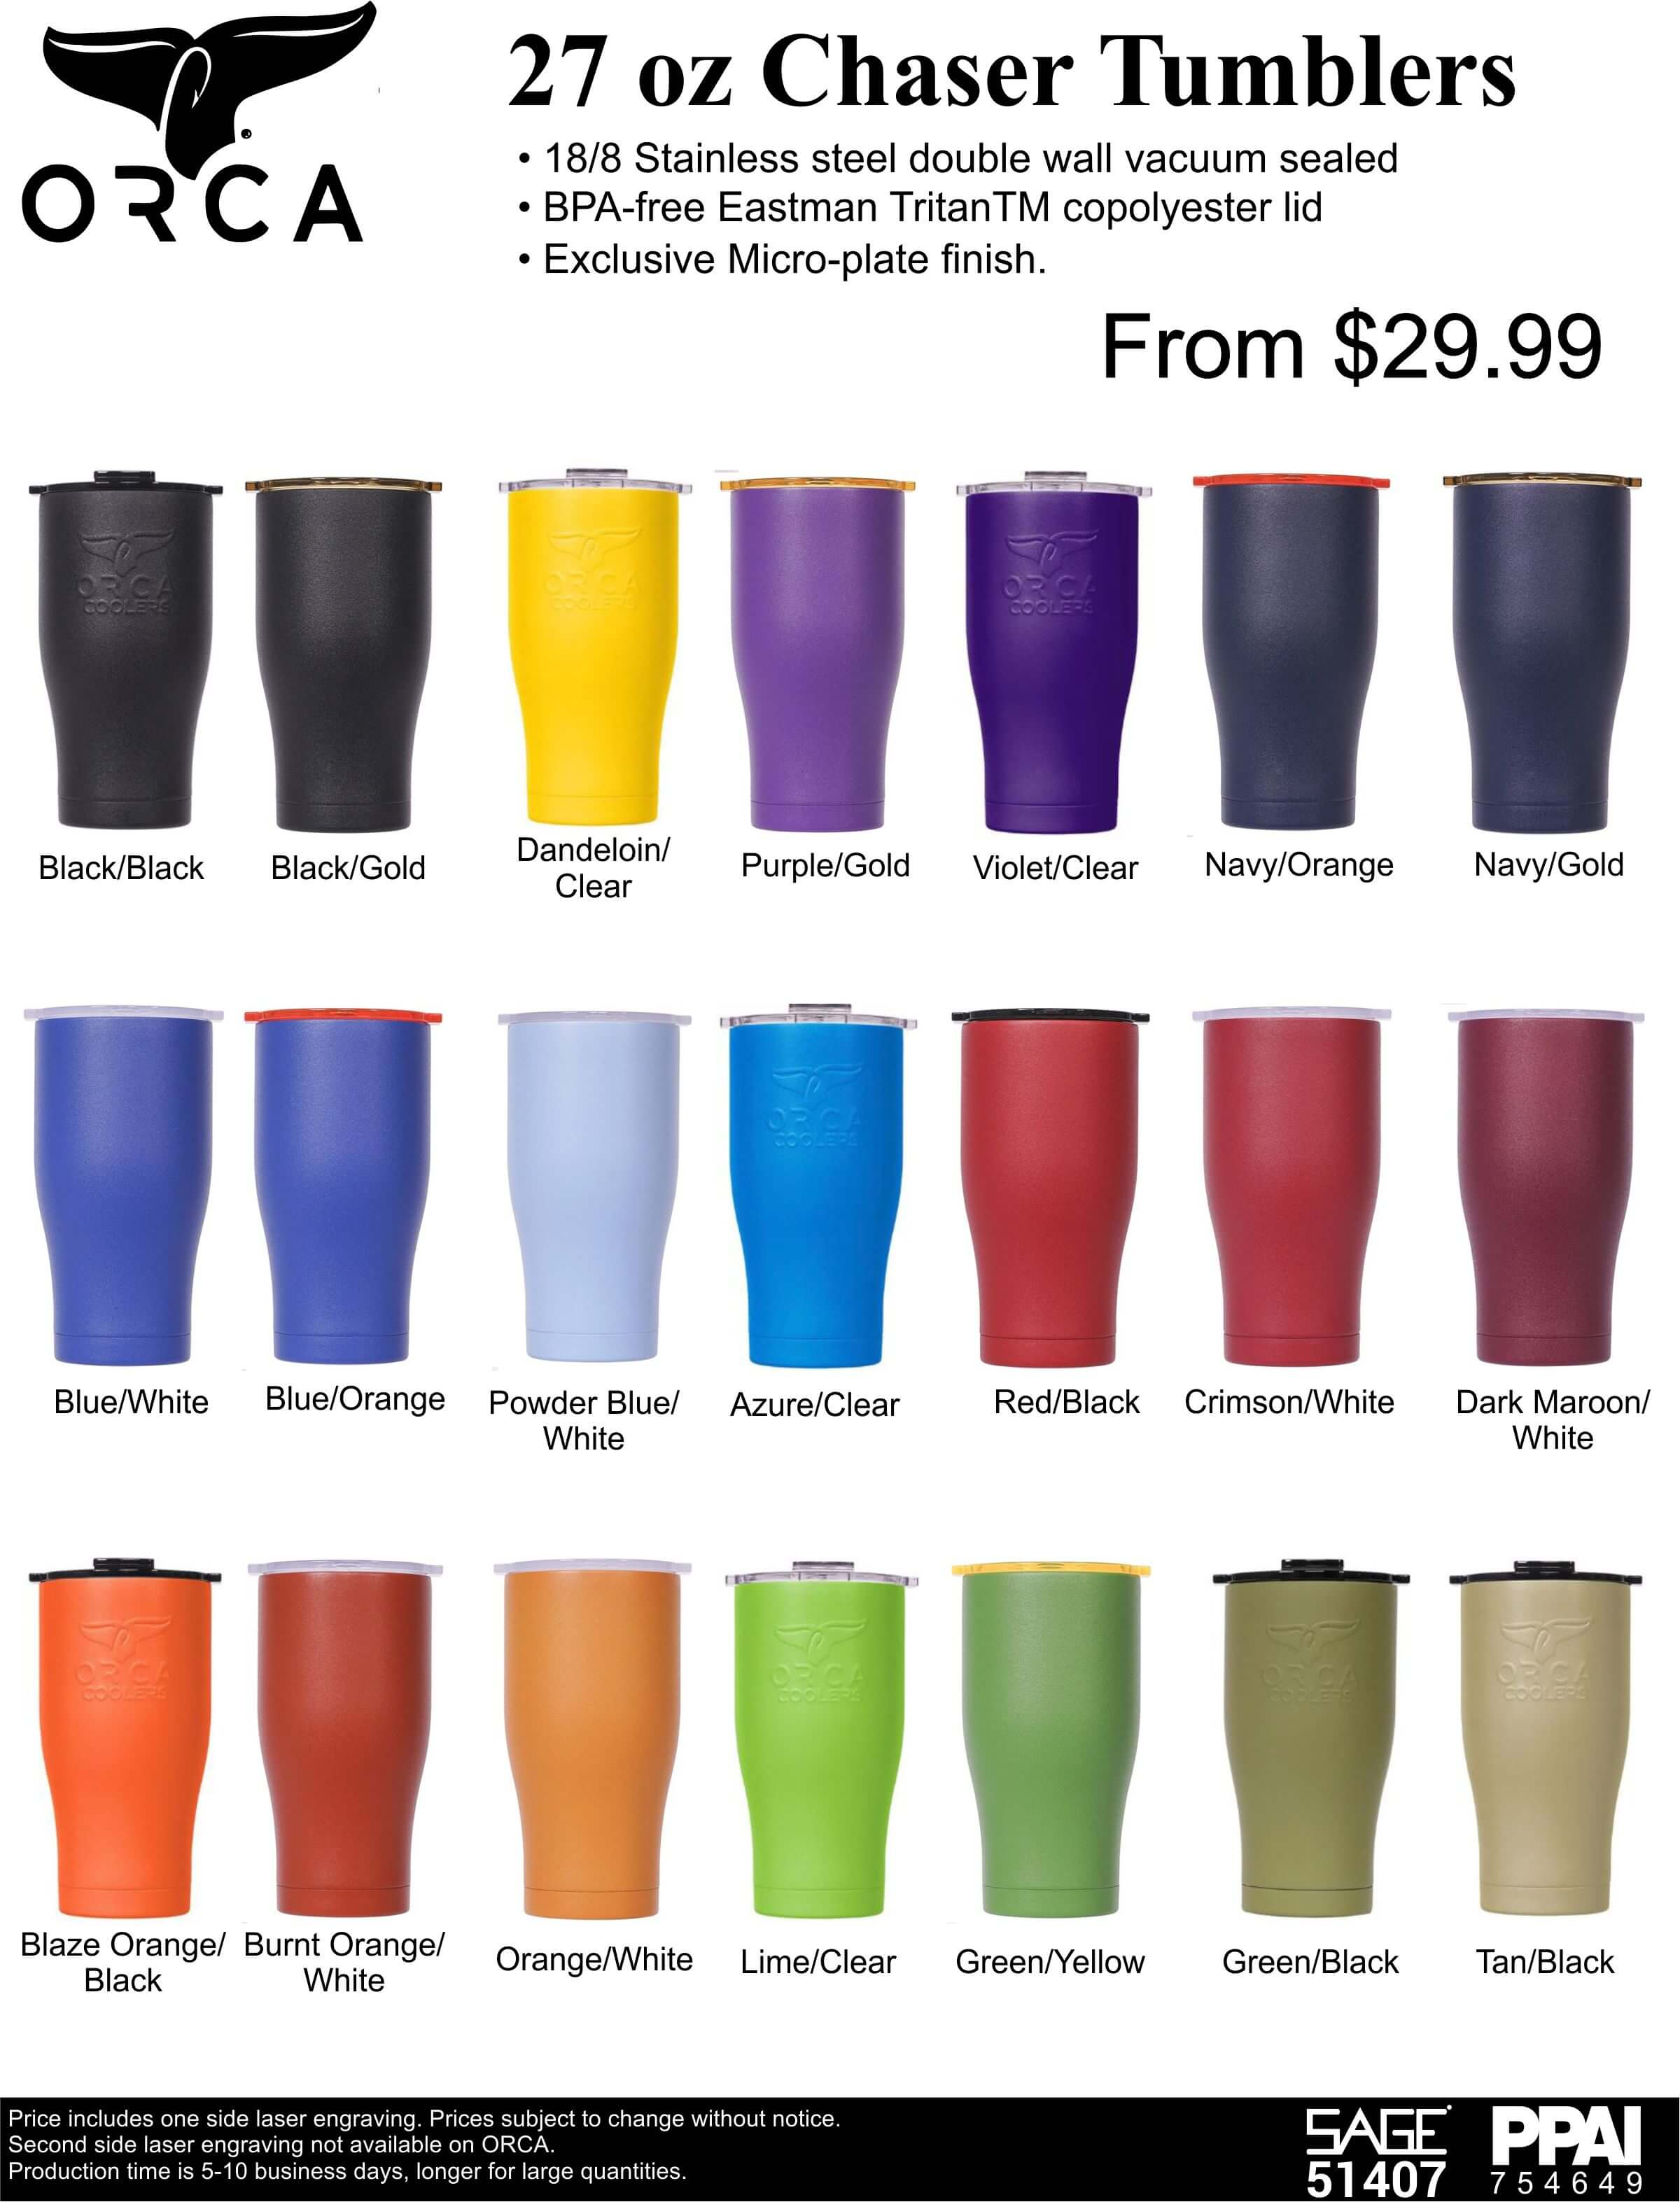 Orca 27 oz Chaser Tumblers